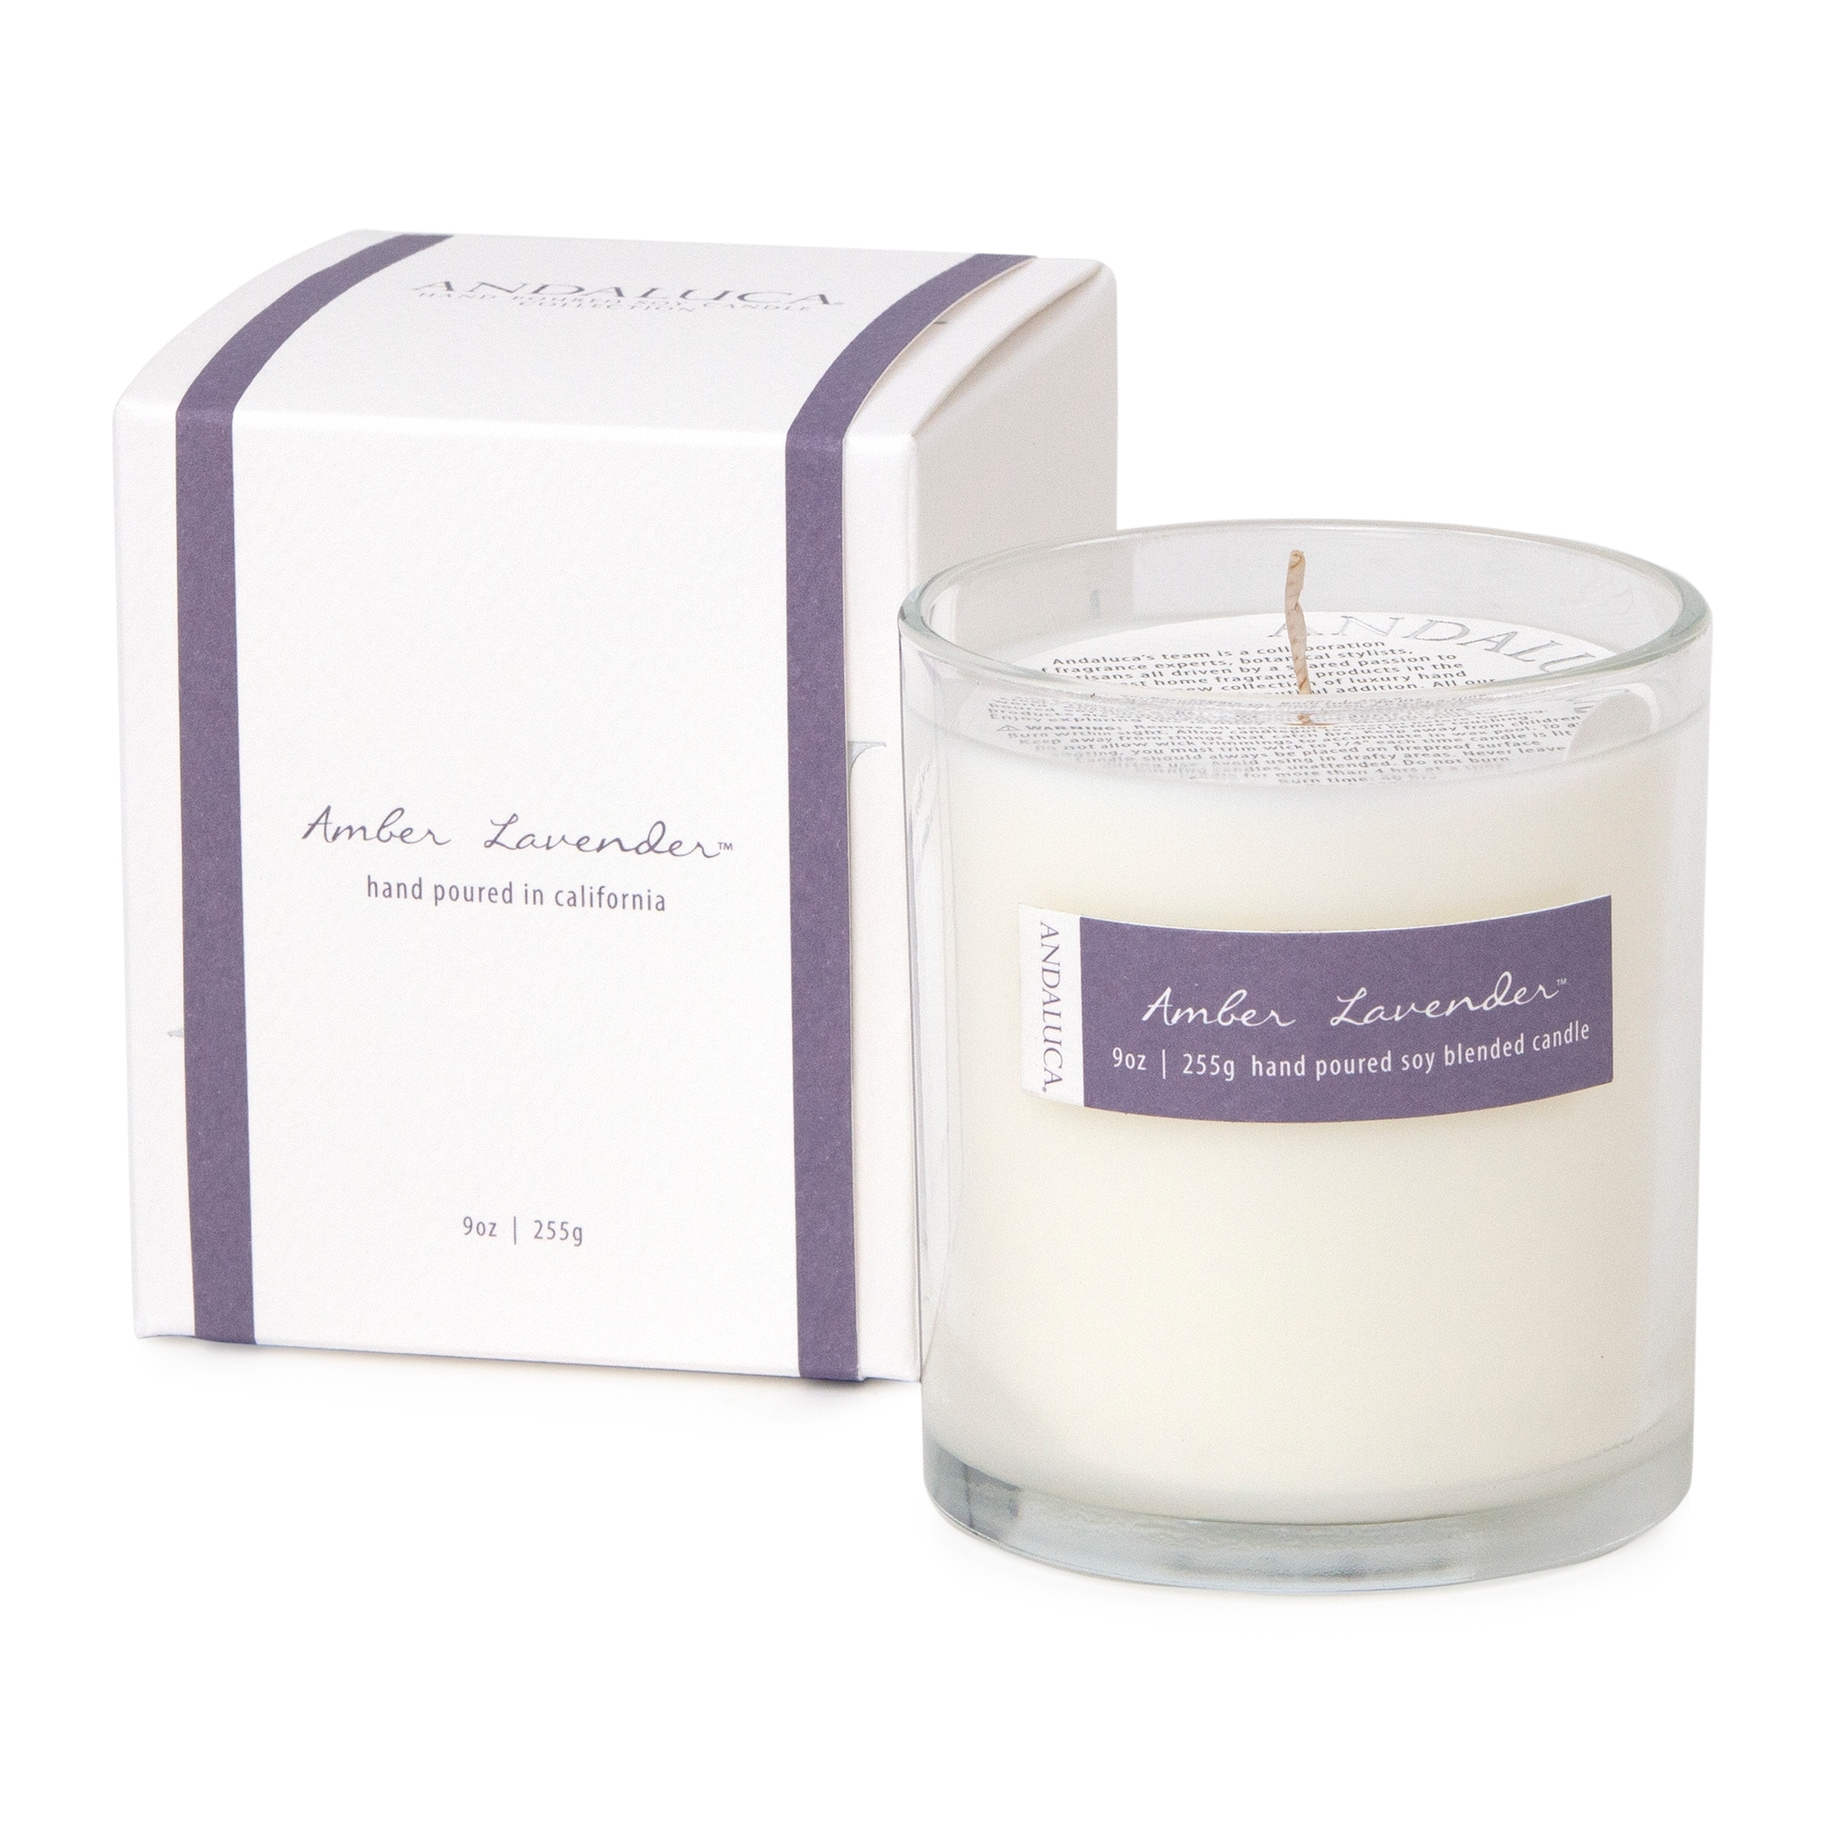 Andaluca Candle